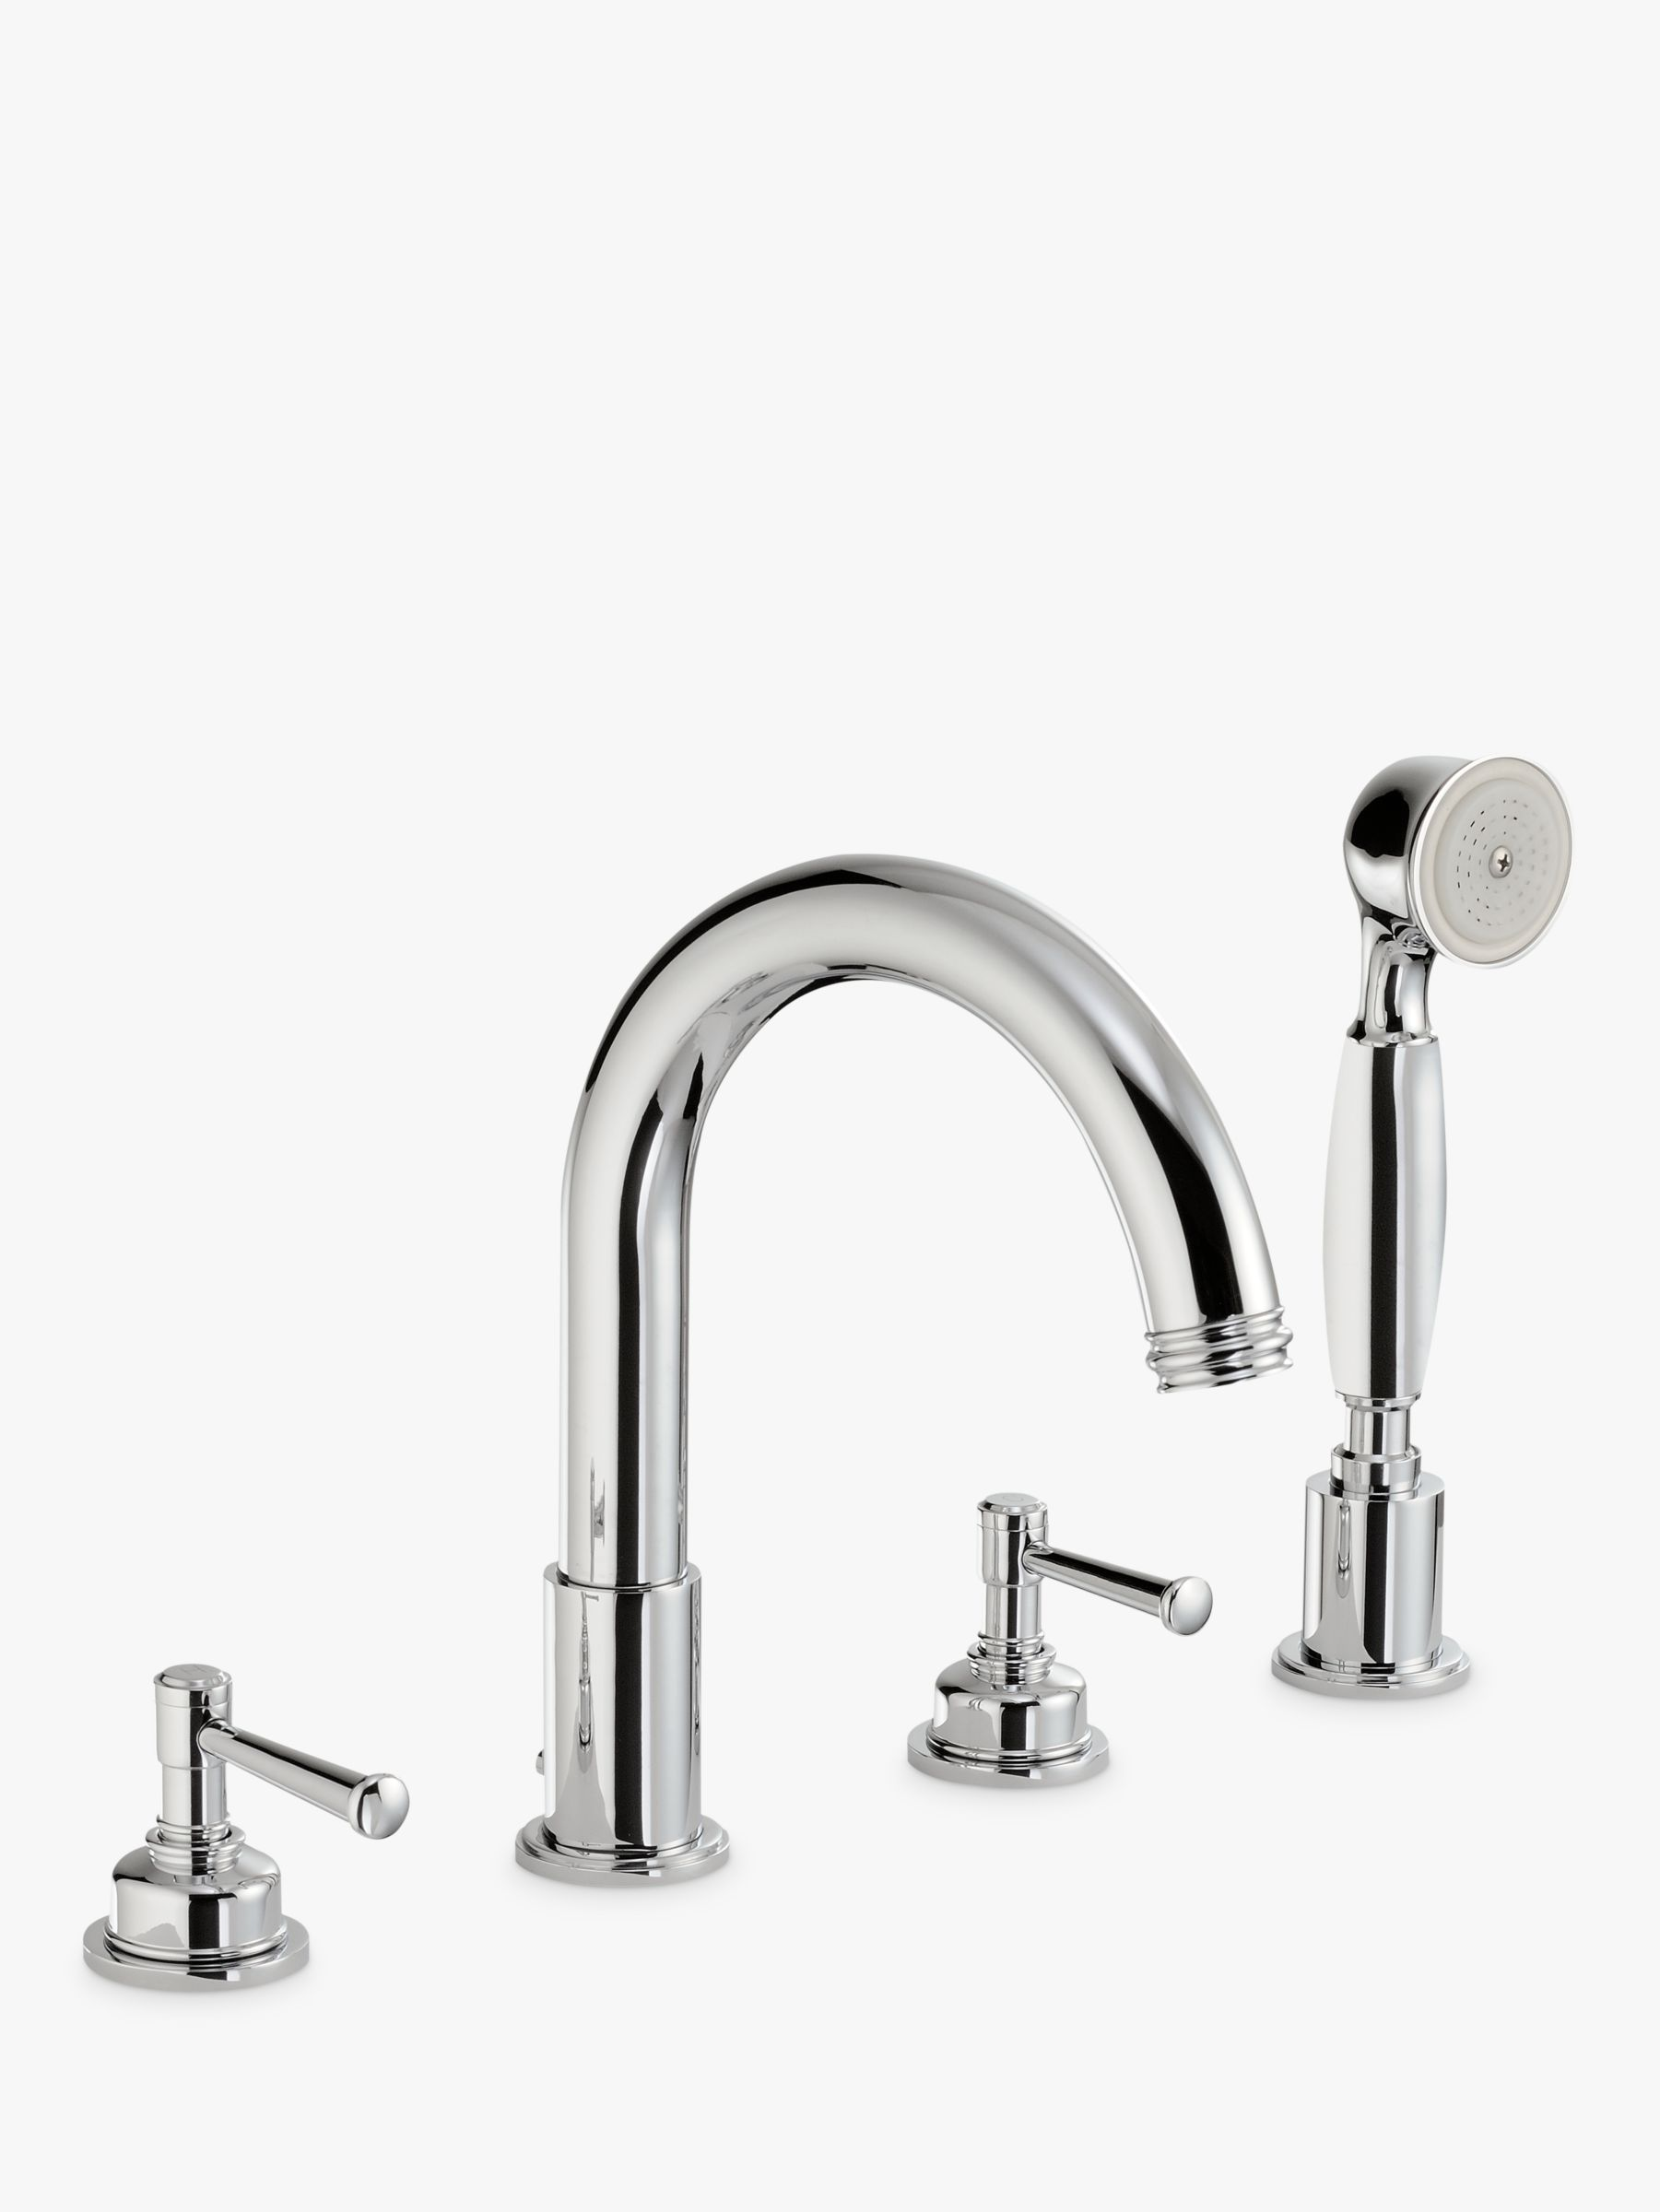 Abode Abode Gallant Deck Mounted 4 Hole Bath/Shower Mixer Tap